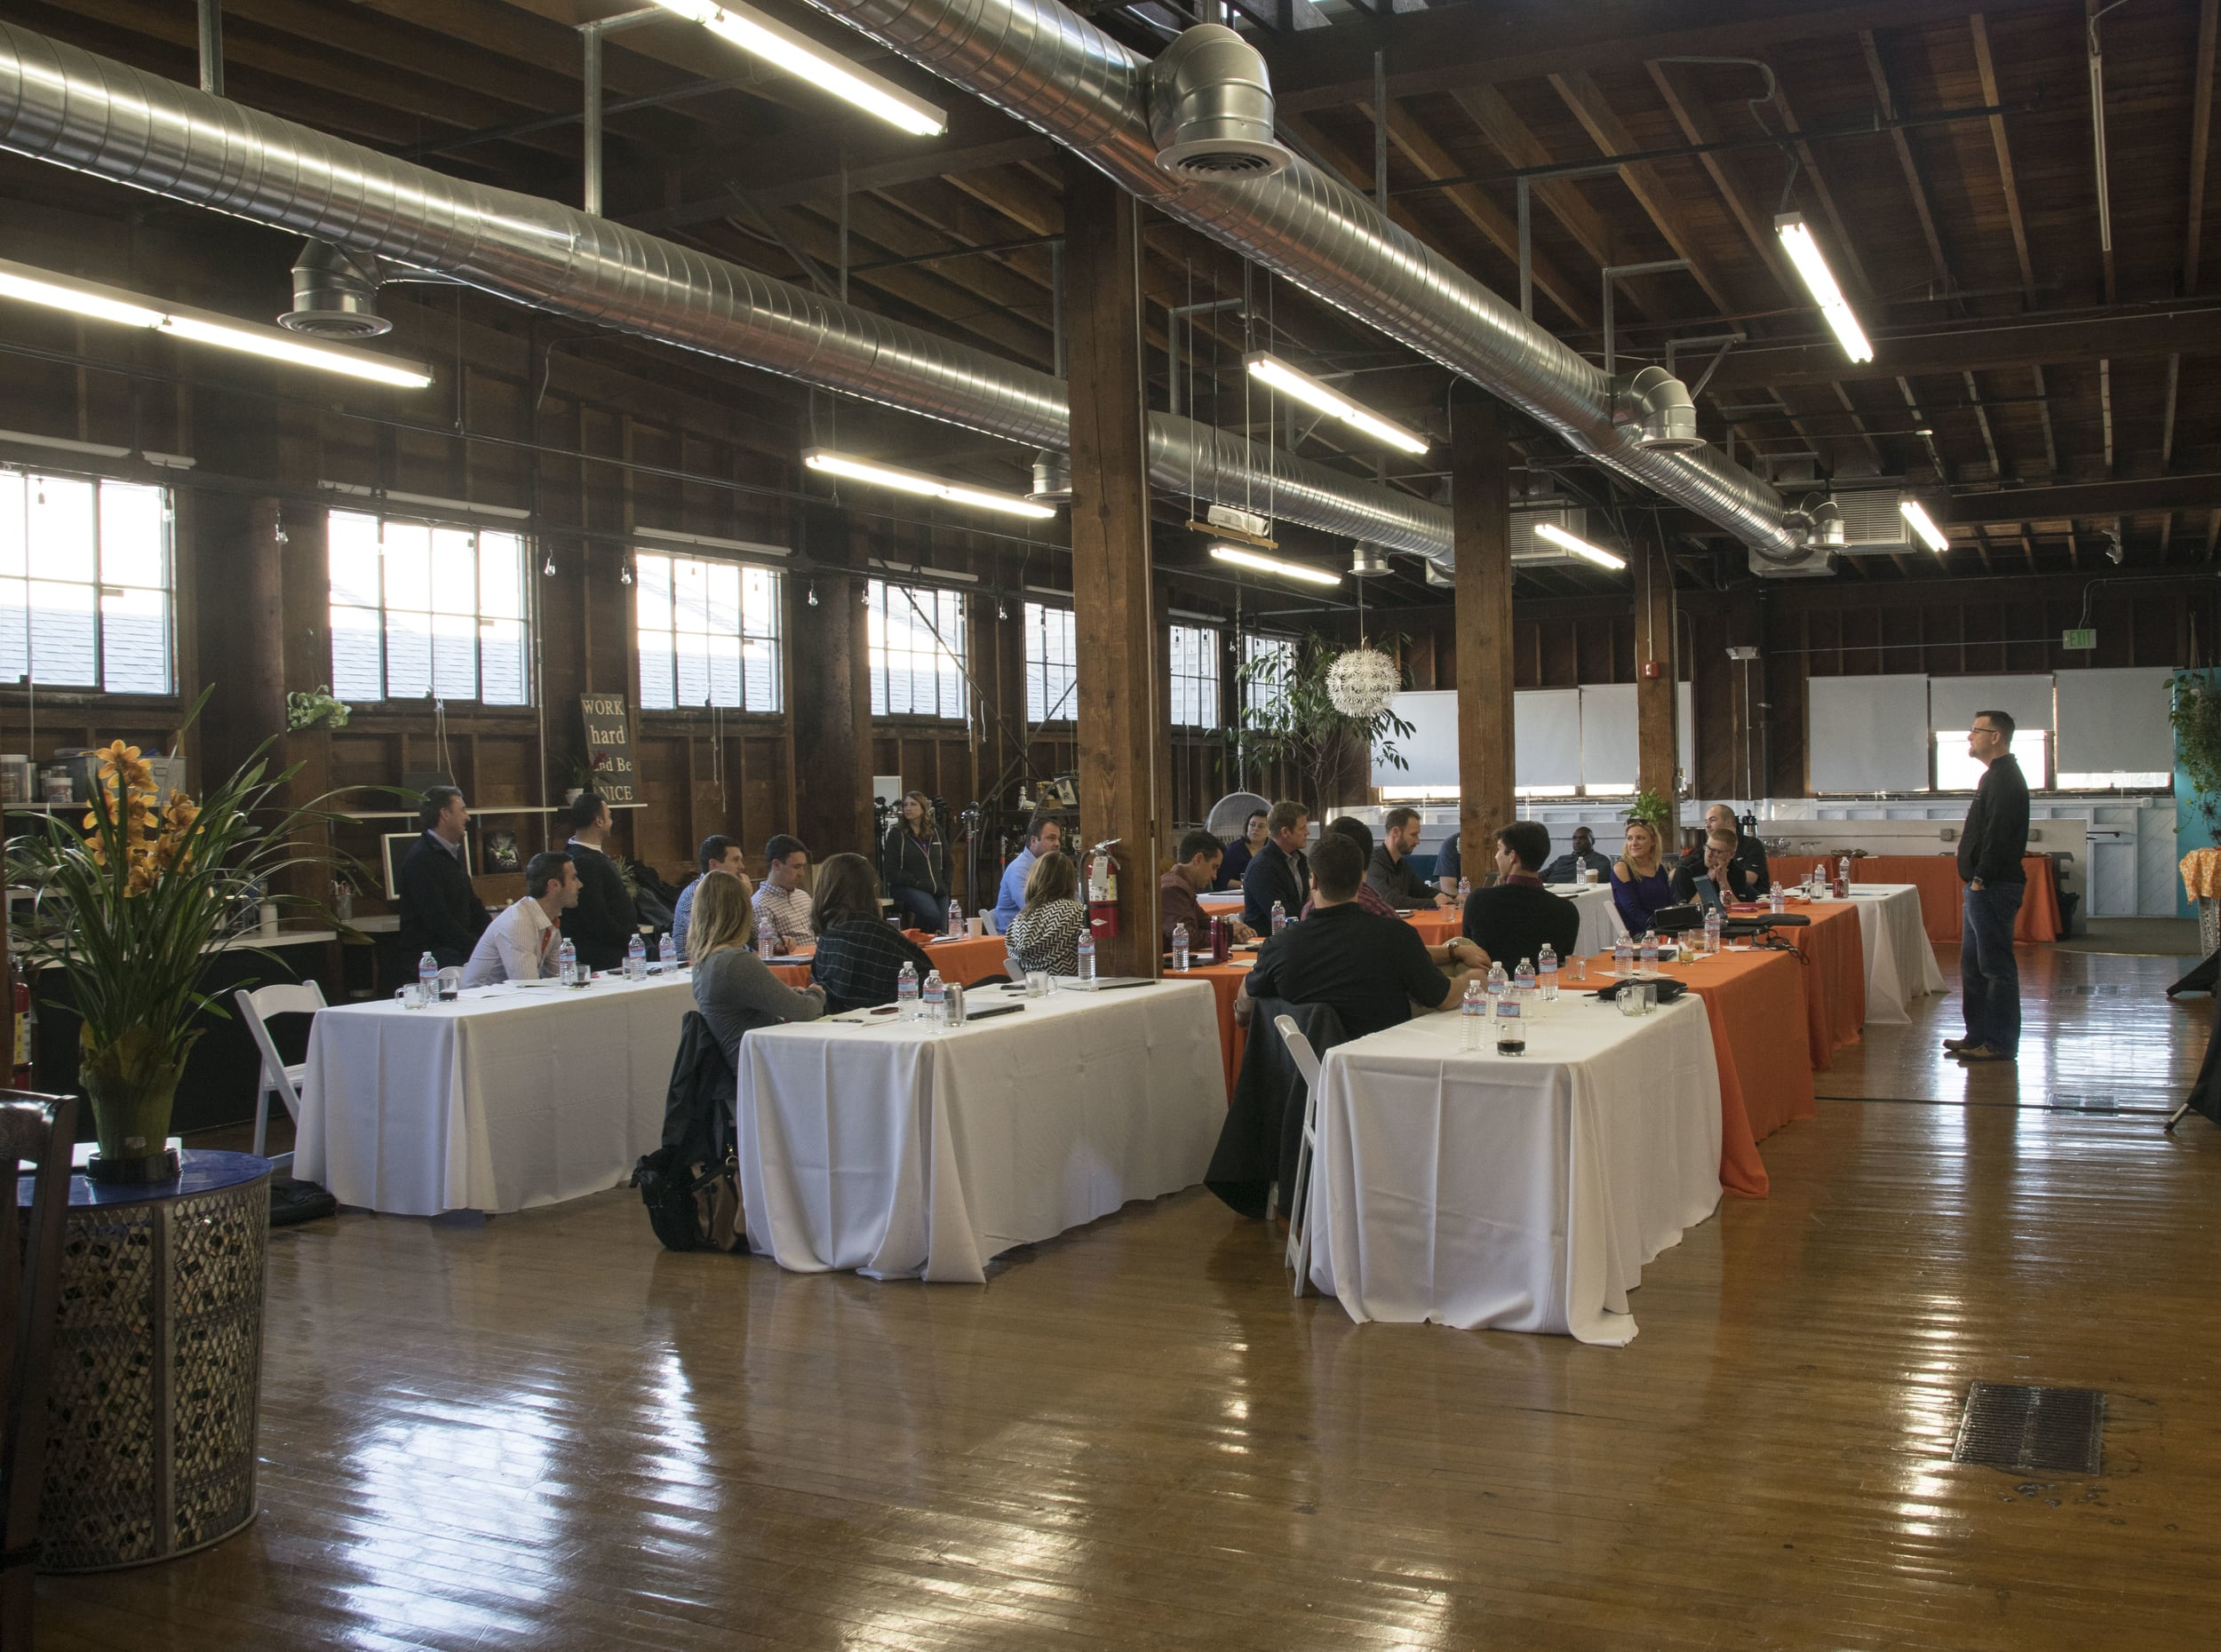 The loft was setup perfectly for this corporate workshop.